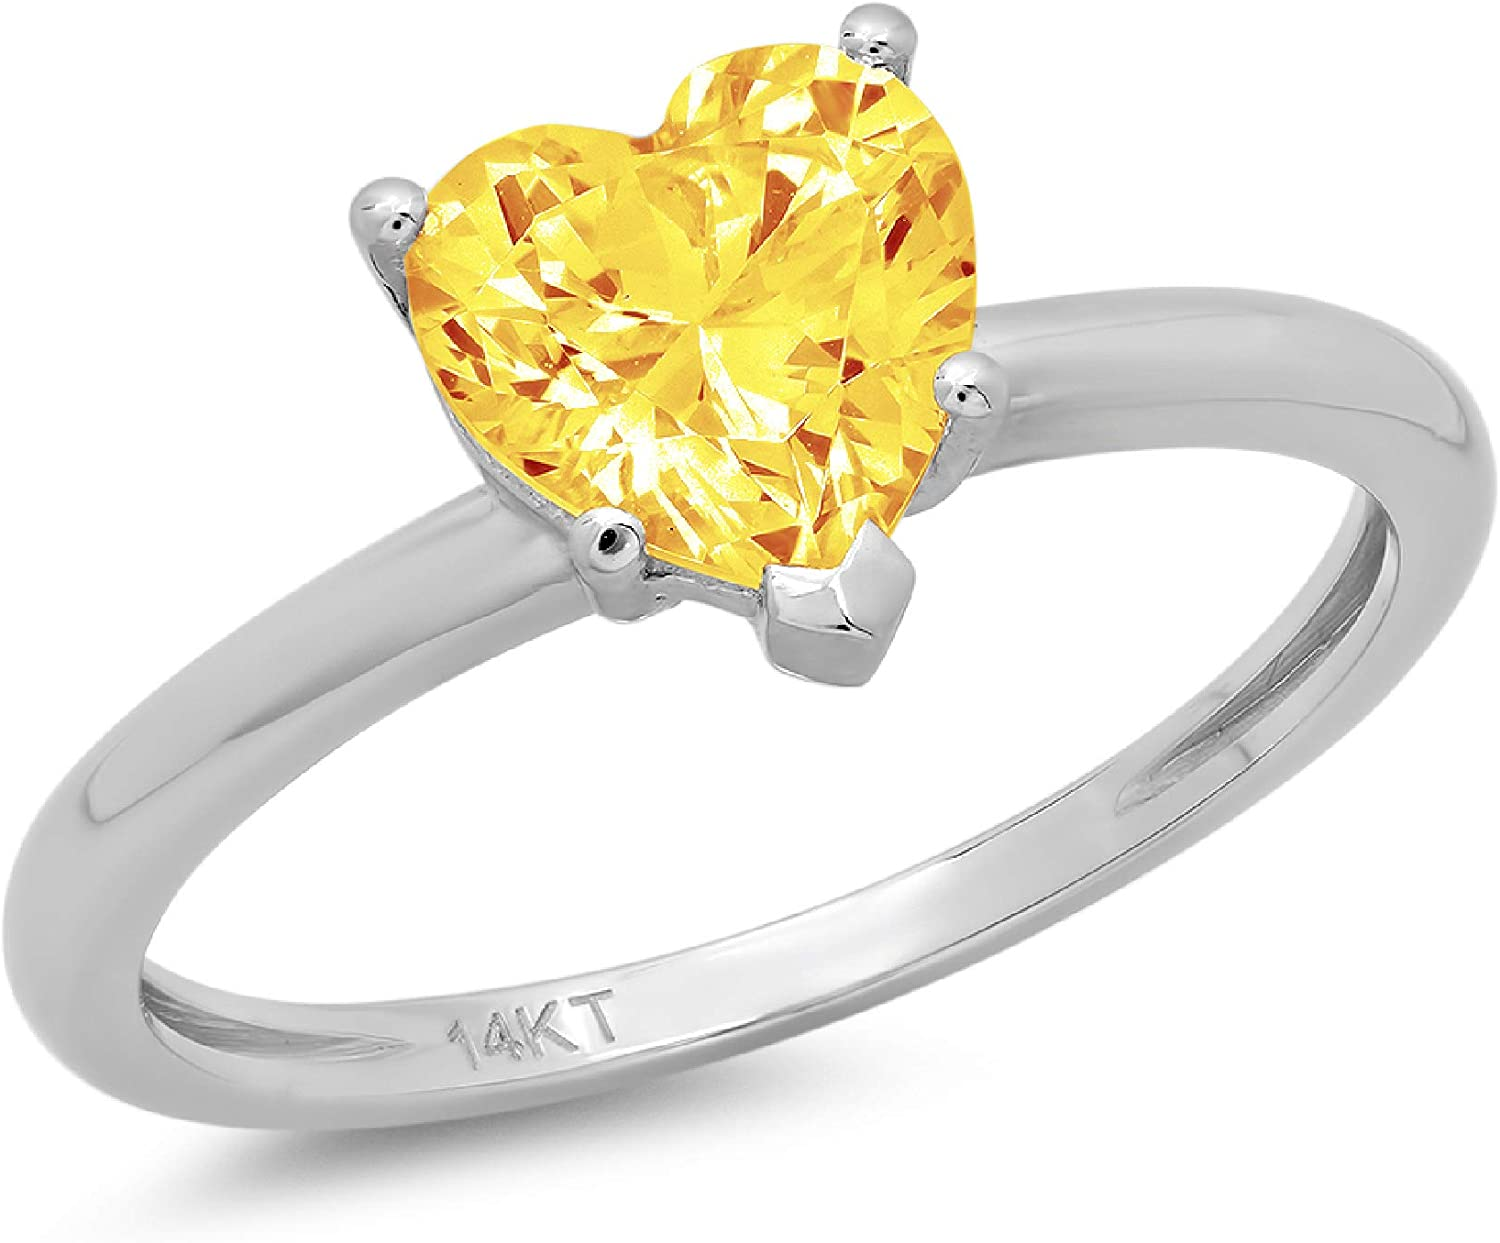 1.9ct Brilliant Heart Cut Solitaire Natural Yellow Citrine Ideal VVS1 5-Prong Engagement Wedding Bridal Promise Anniversary Ring Solid 14k White Gold for Women